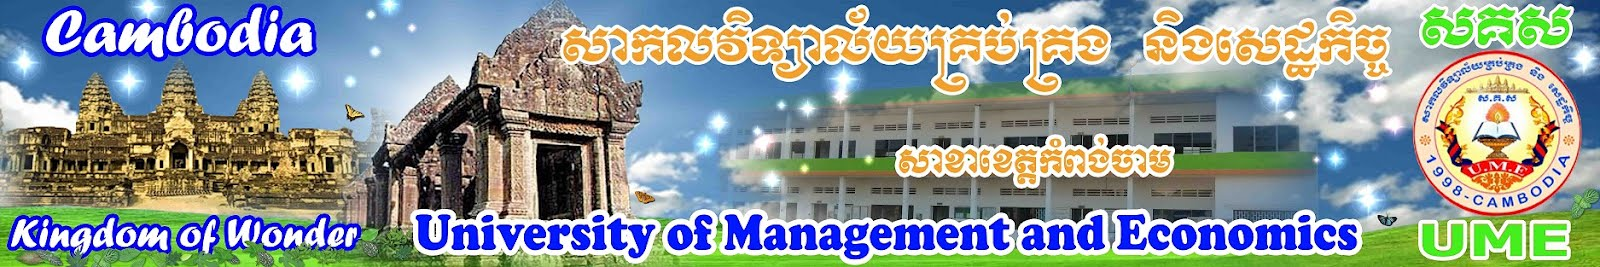 University of Management and Economics, Kampong Cham Branch